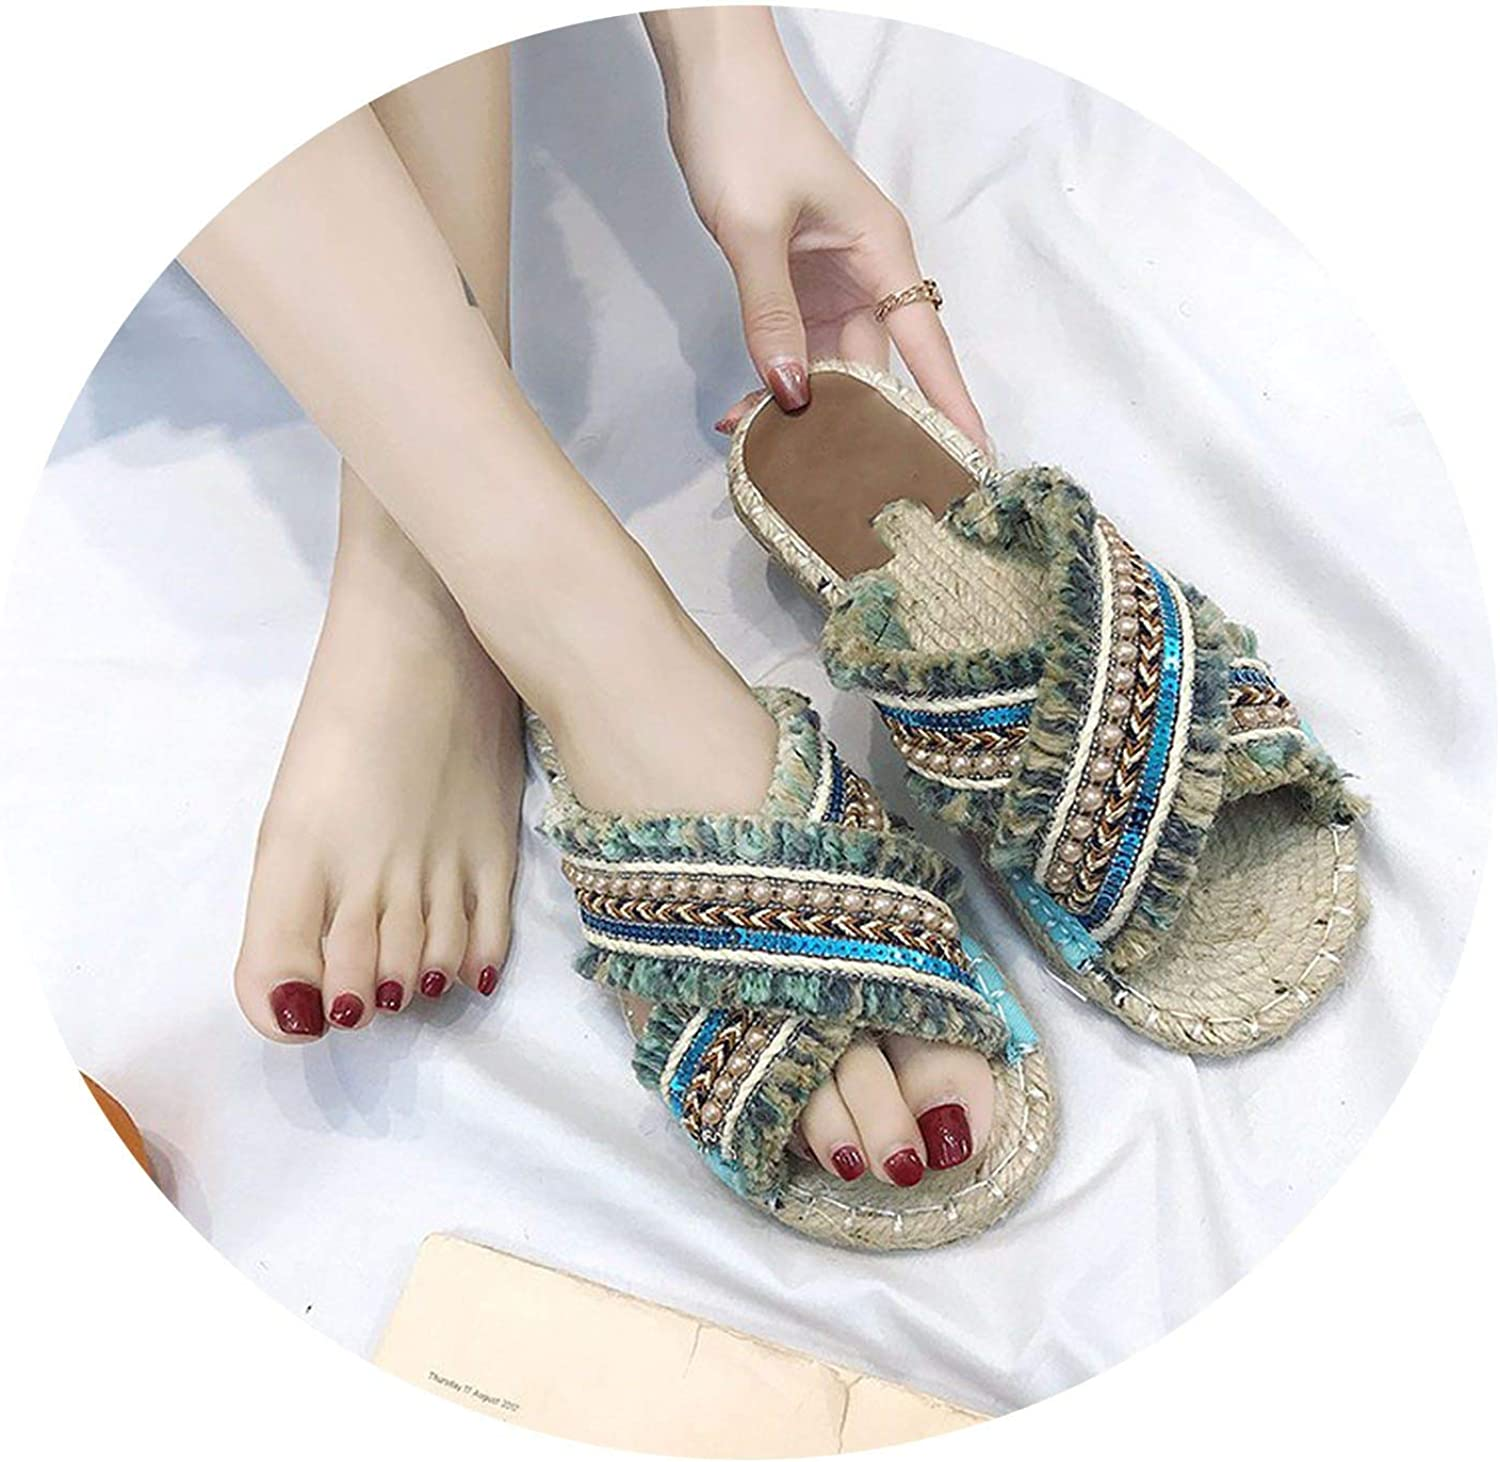 Monicas-Dream Bohemian Women Linen Slippers Striped Ribbon Cork Sandals Flat Non-Slip Flip Flop Home shoes Casual Straw Beach Slipper